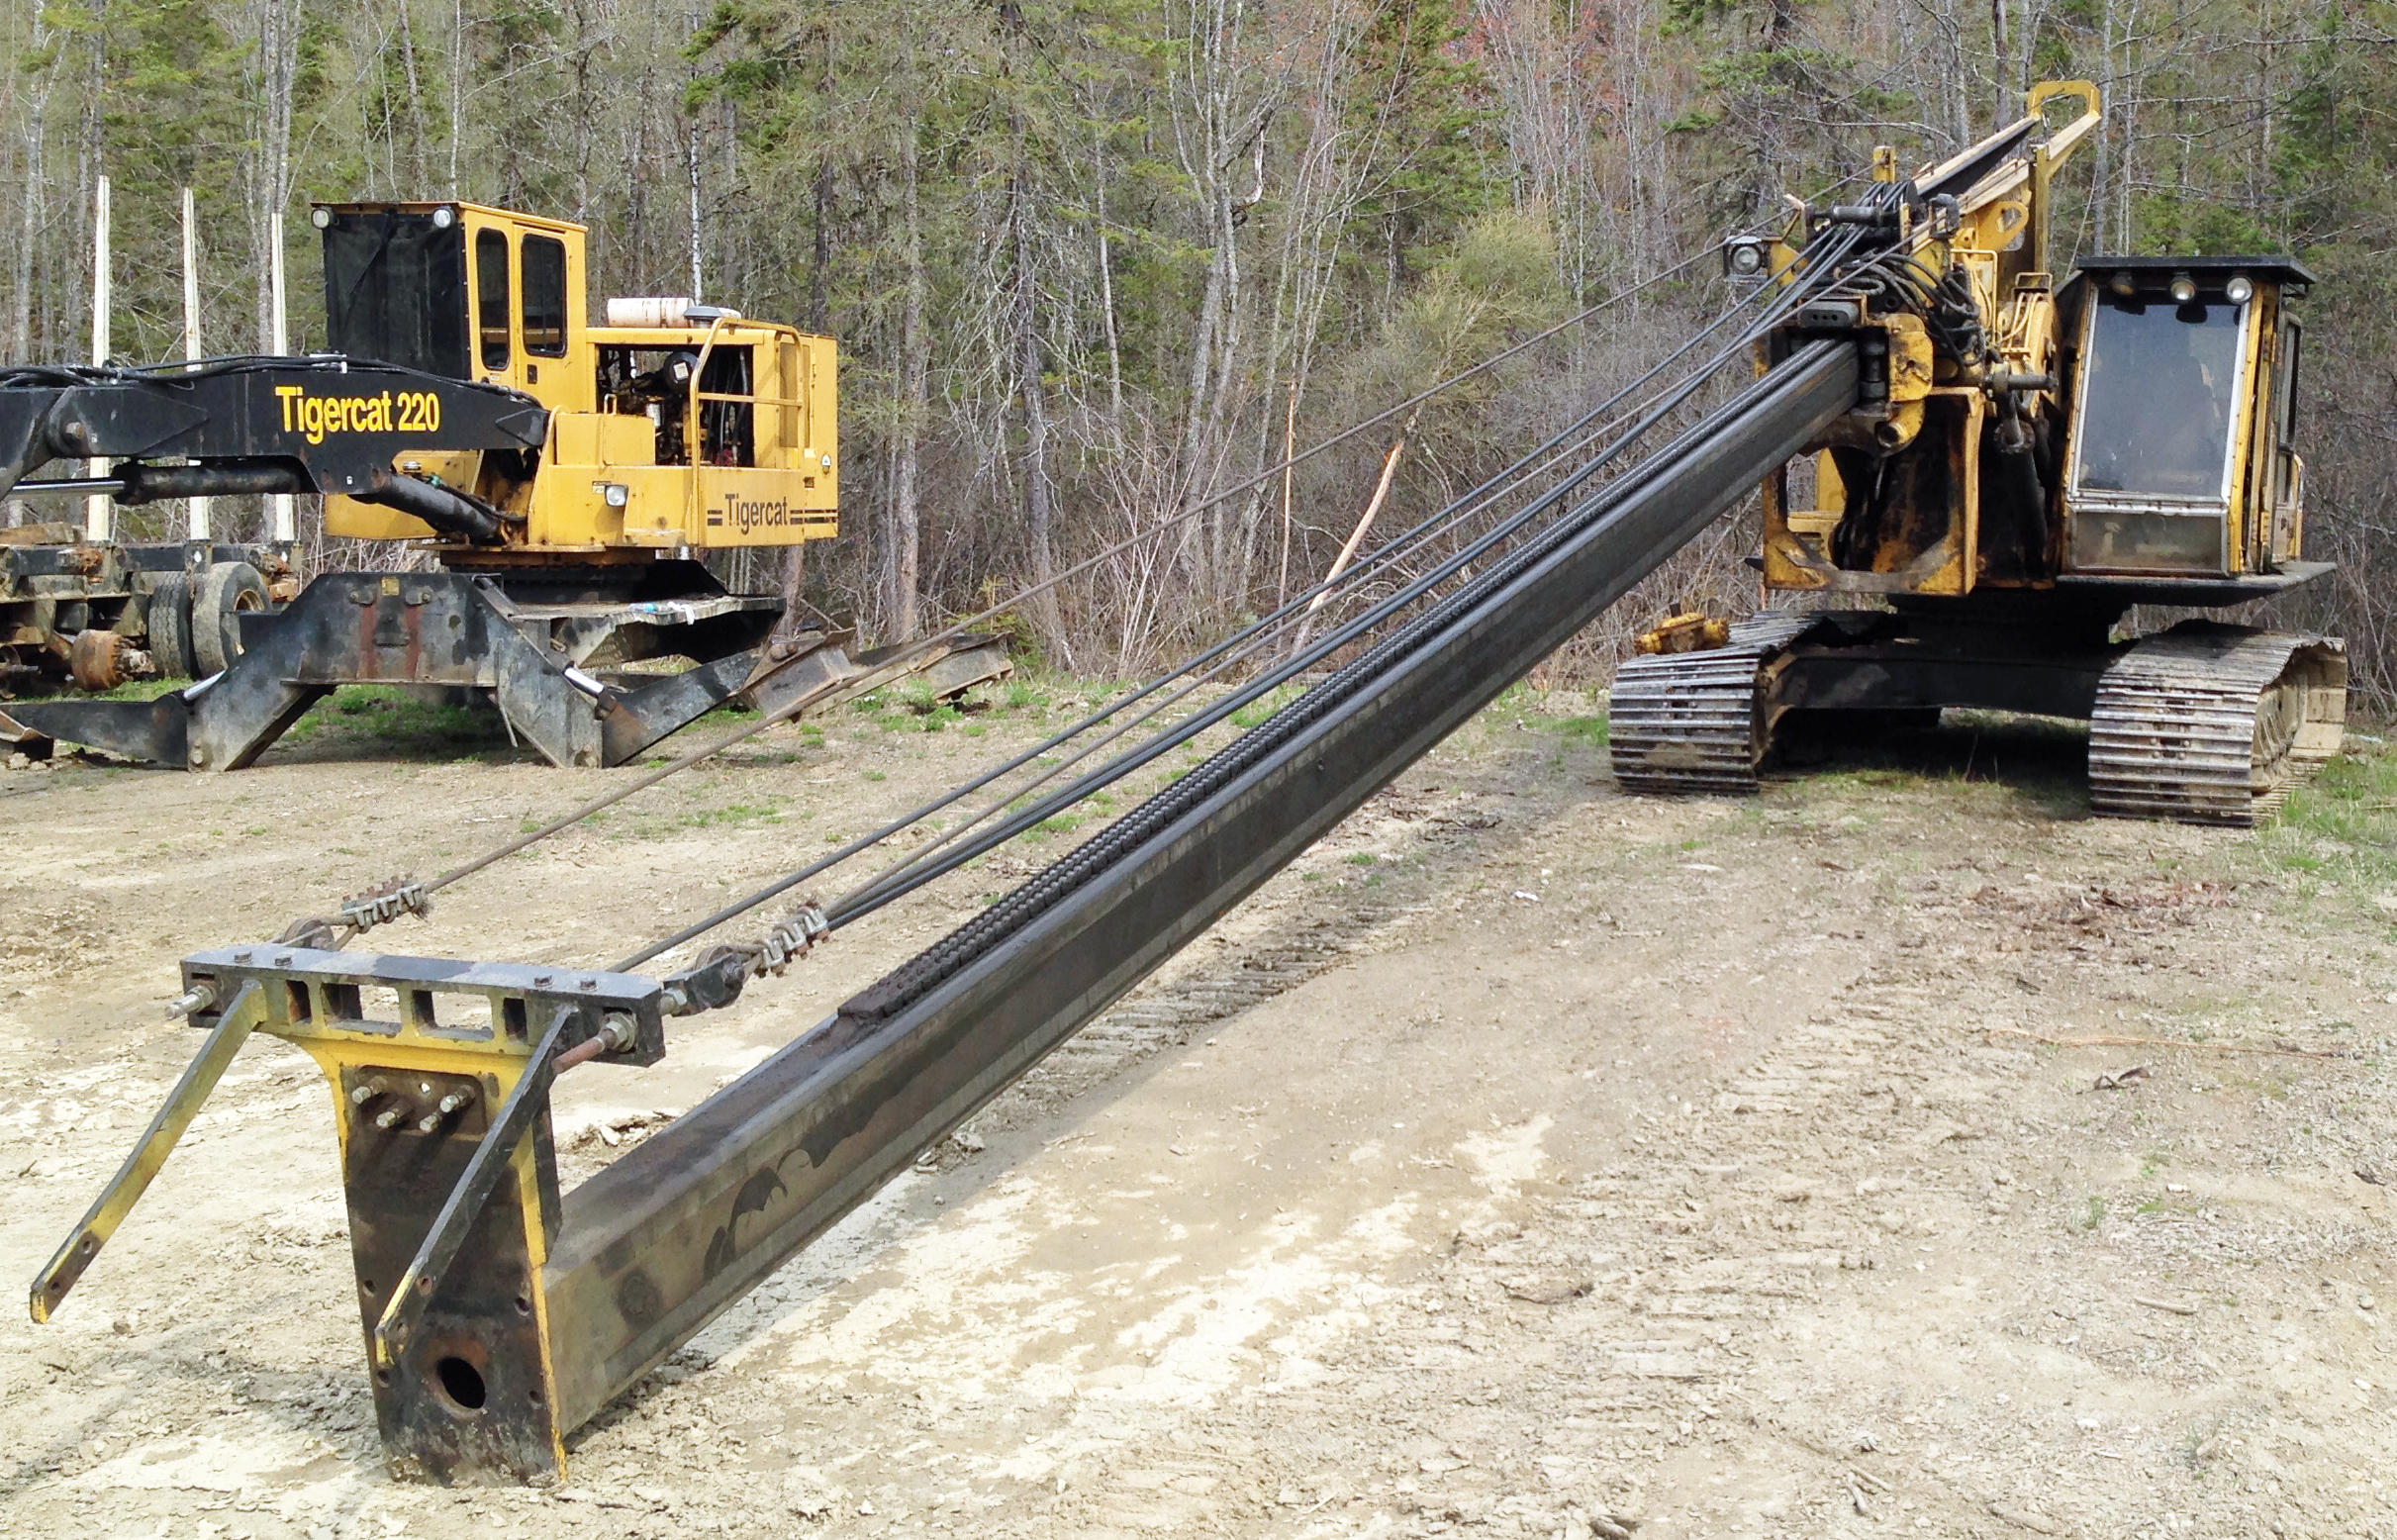 TIMED ONLINE AUCTION LATE MODEL FORESTRY EQUIPMENT Auction